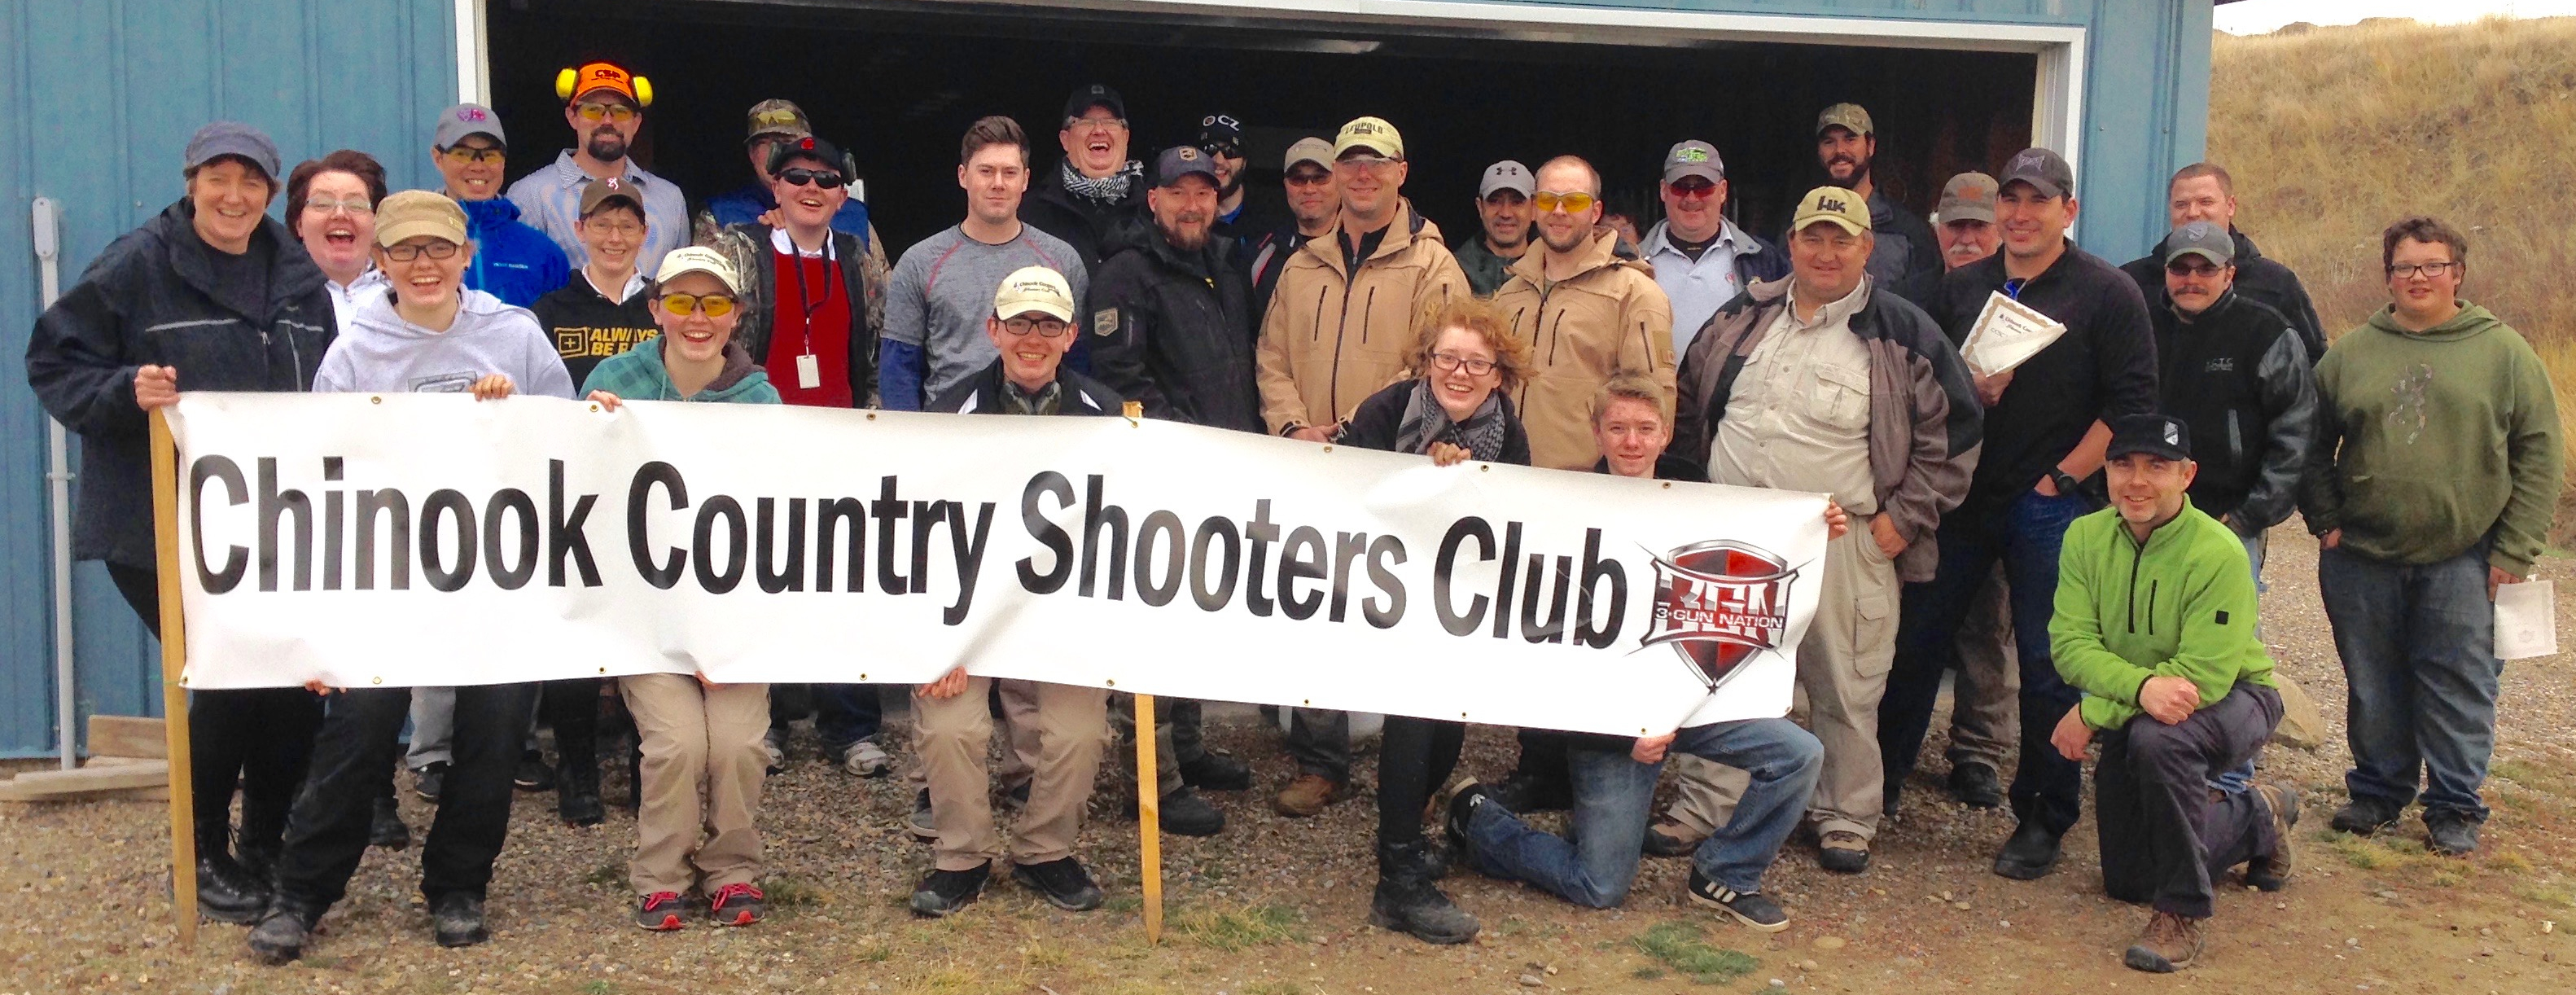 Chinook Country Shooters Club